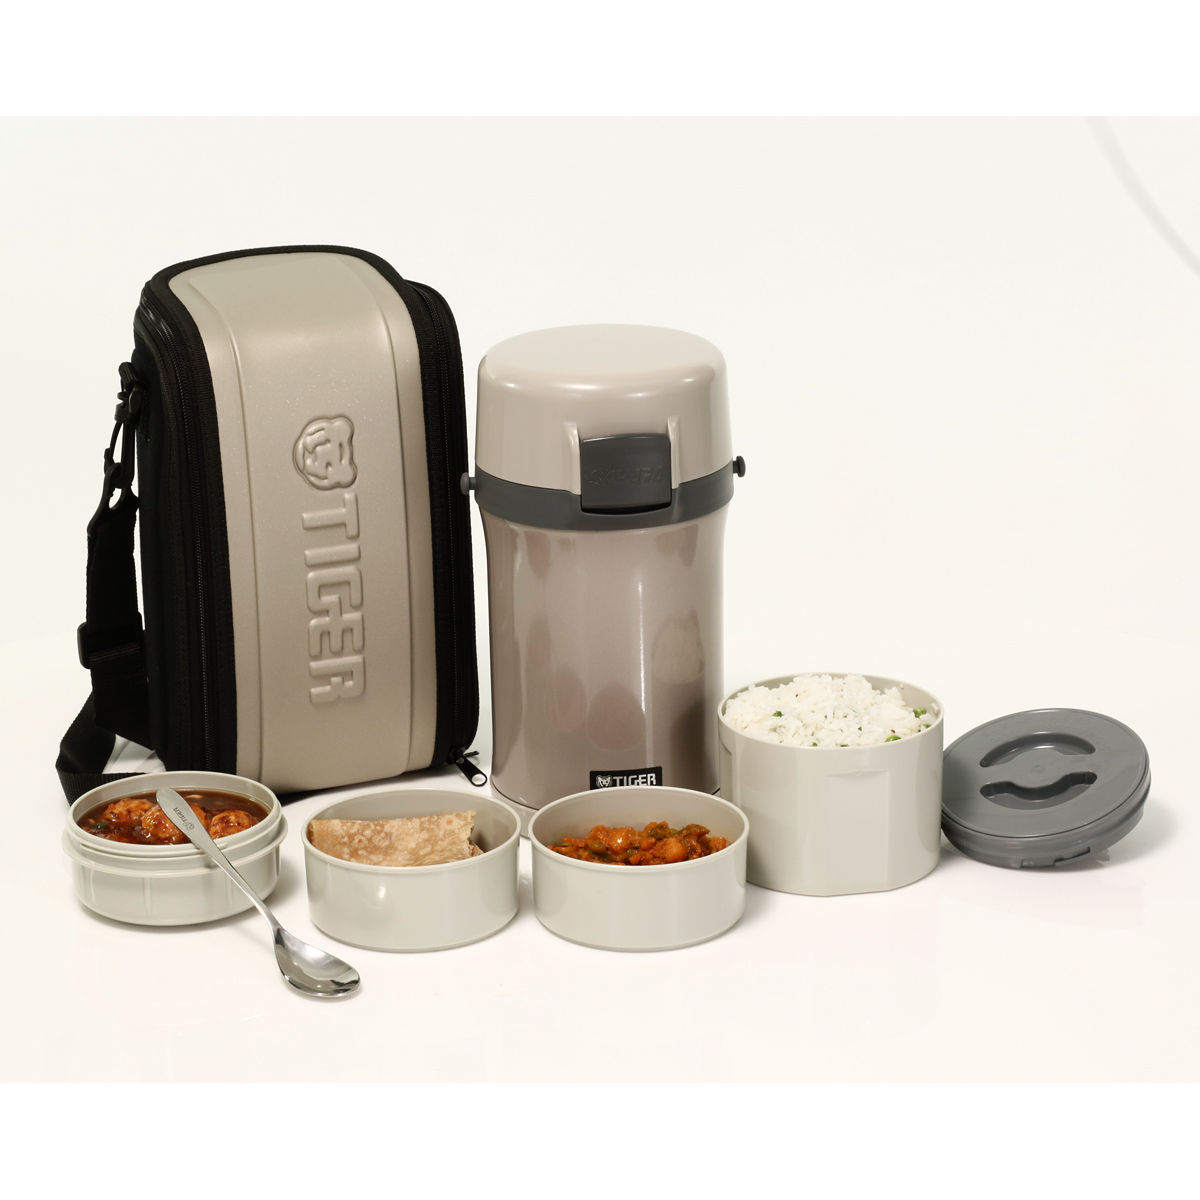 5749bce3075 Buy 6 Pcs Tiger Thermal Lunch Box Online at Best Price in India on  Naaptol.com